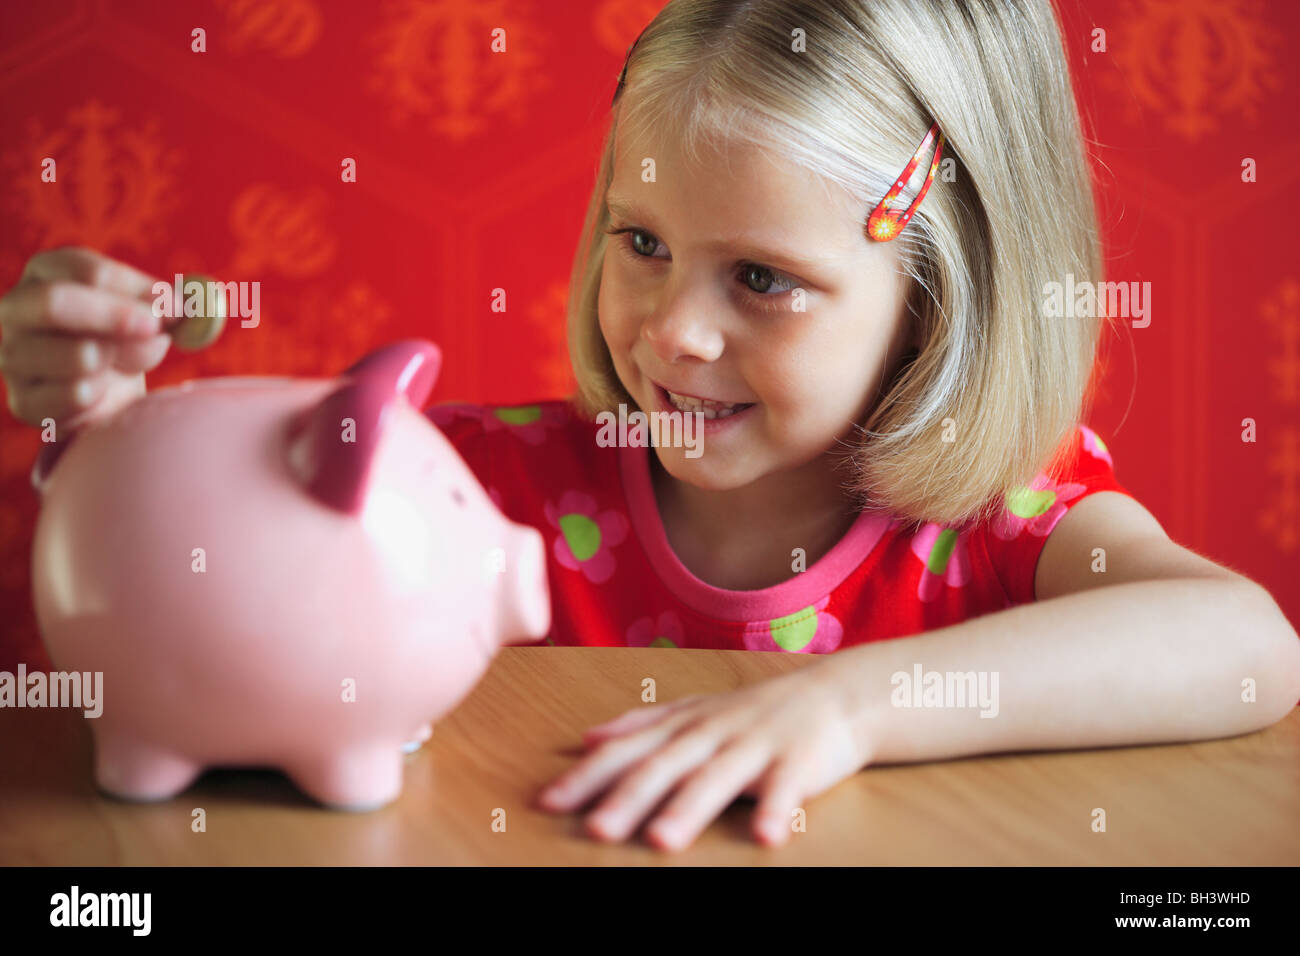 Young girl putting money into a pink piggy bank, smiling - Stock Image